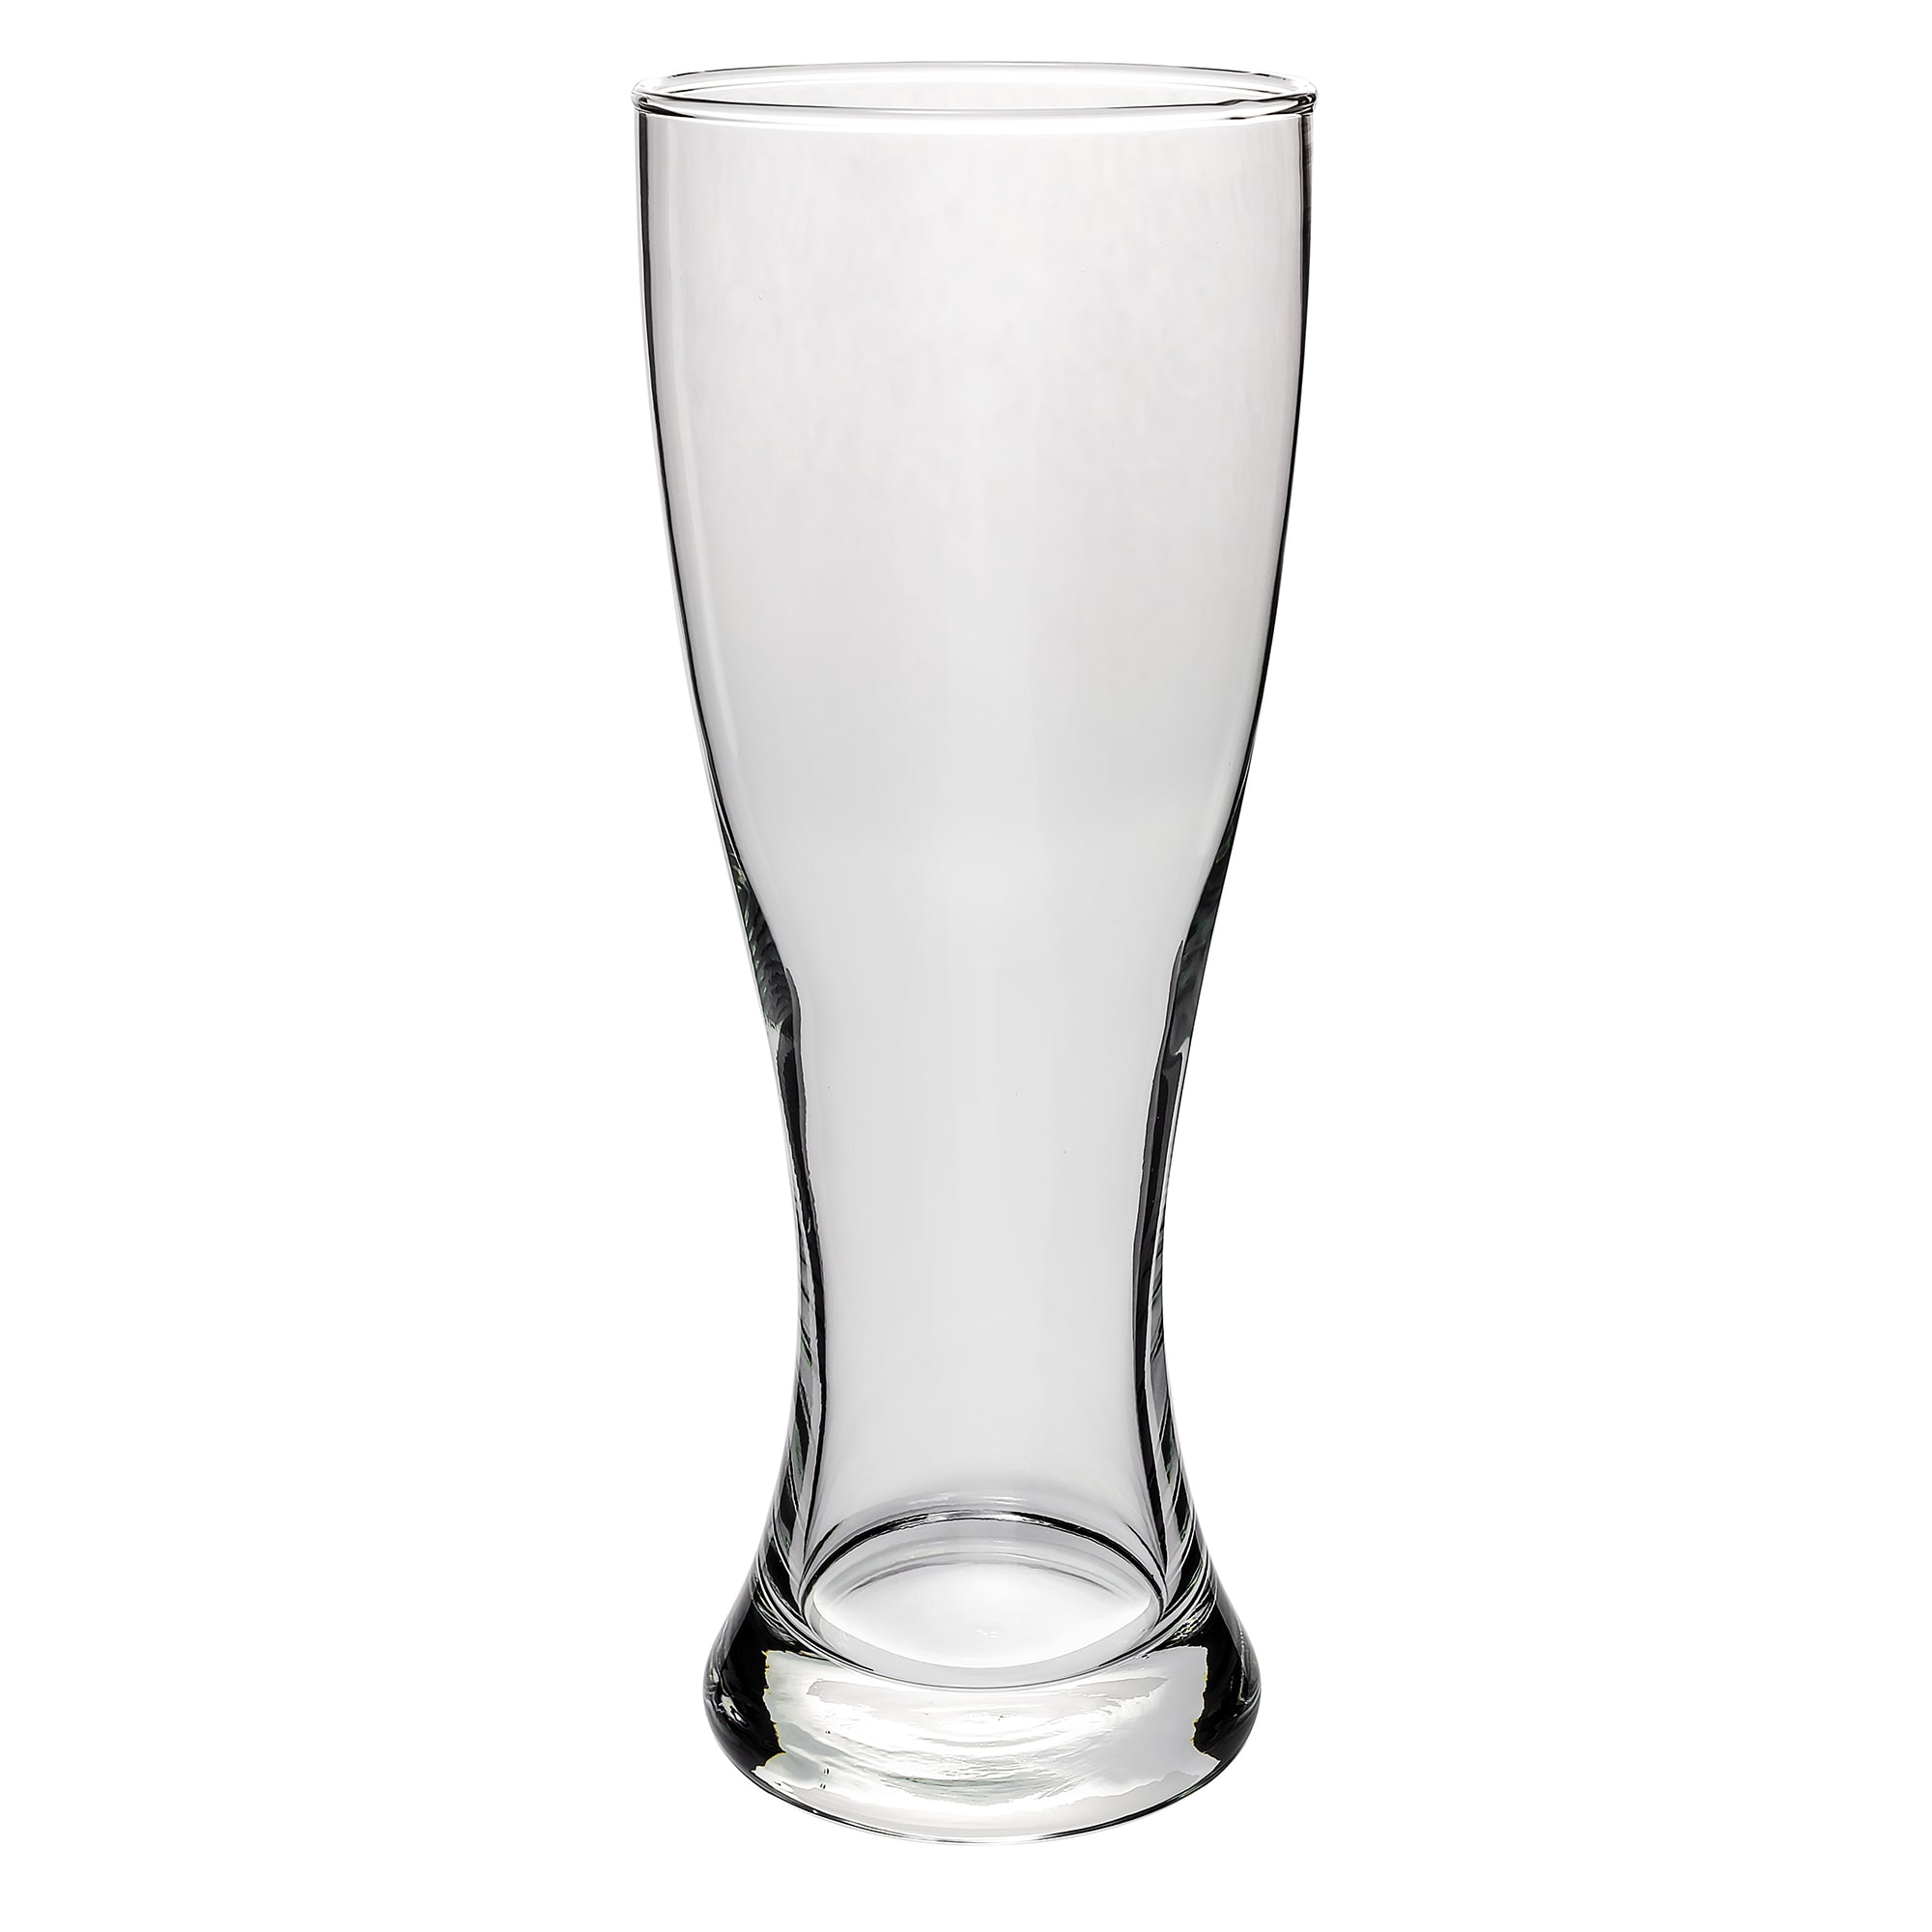 Libbey 1623 23 oz Giant Beer Glass - Safedge Rim Guarantee